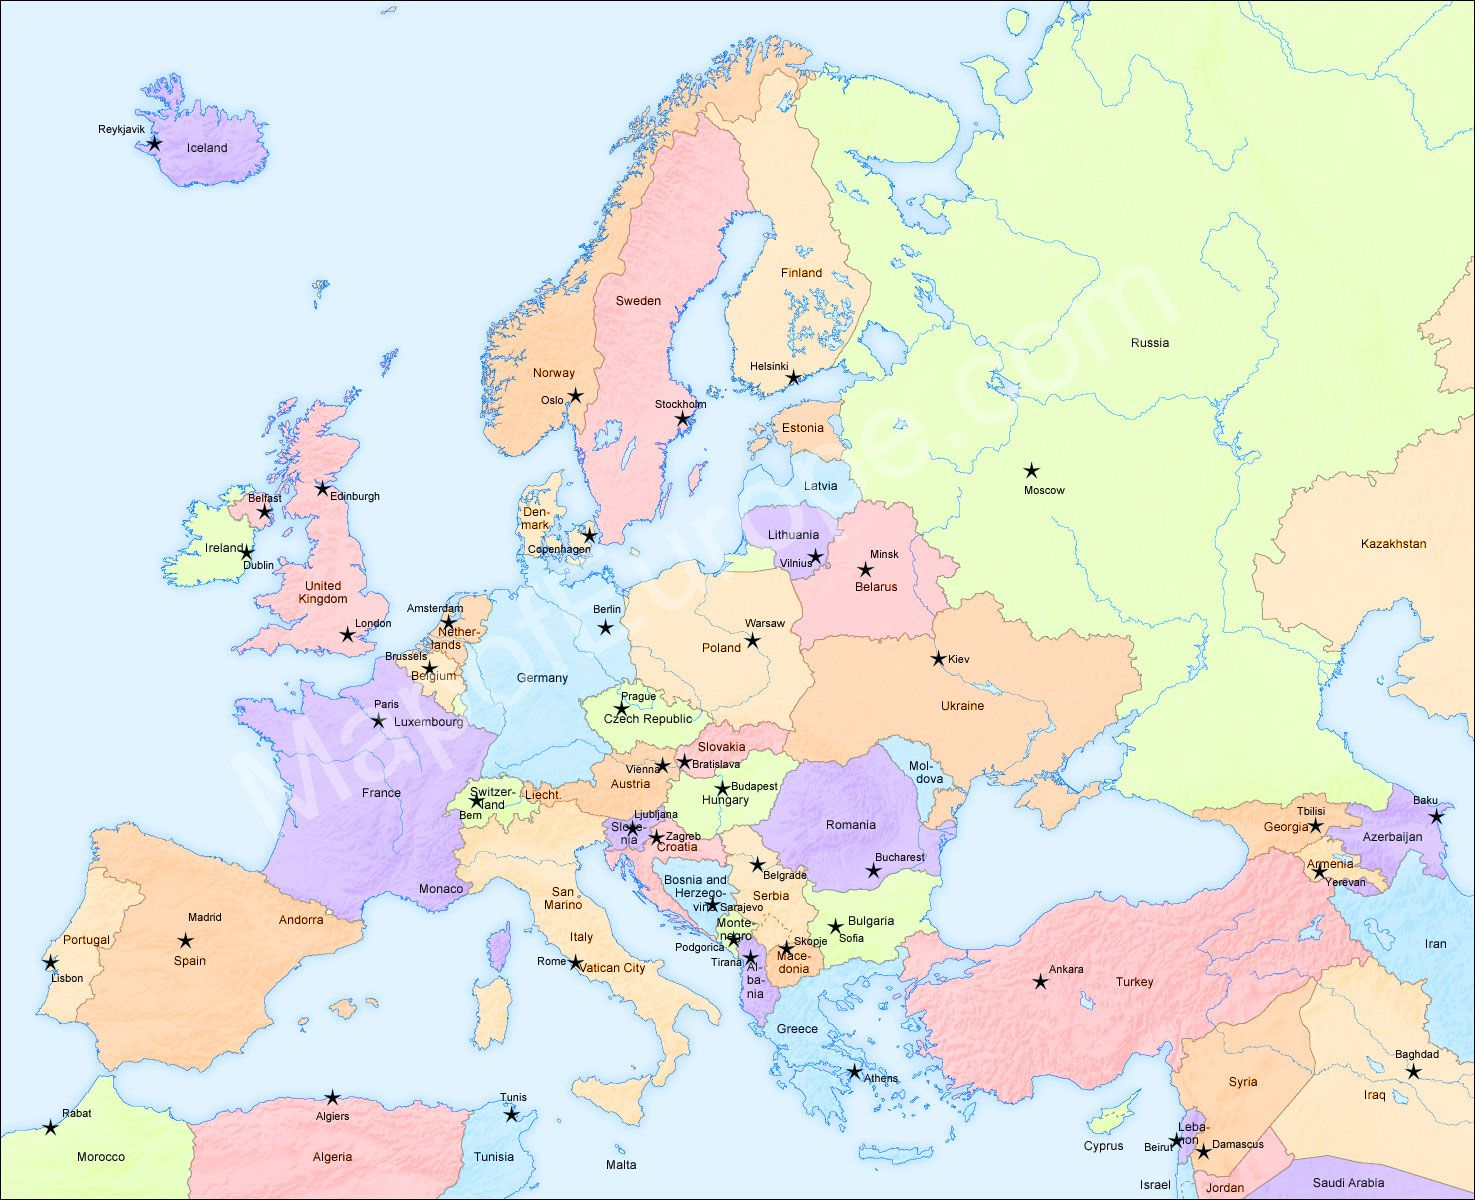 Map Of Europe Europe Map Travel Pinterest - Map of europe with capital cities